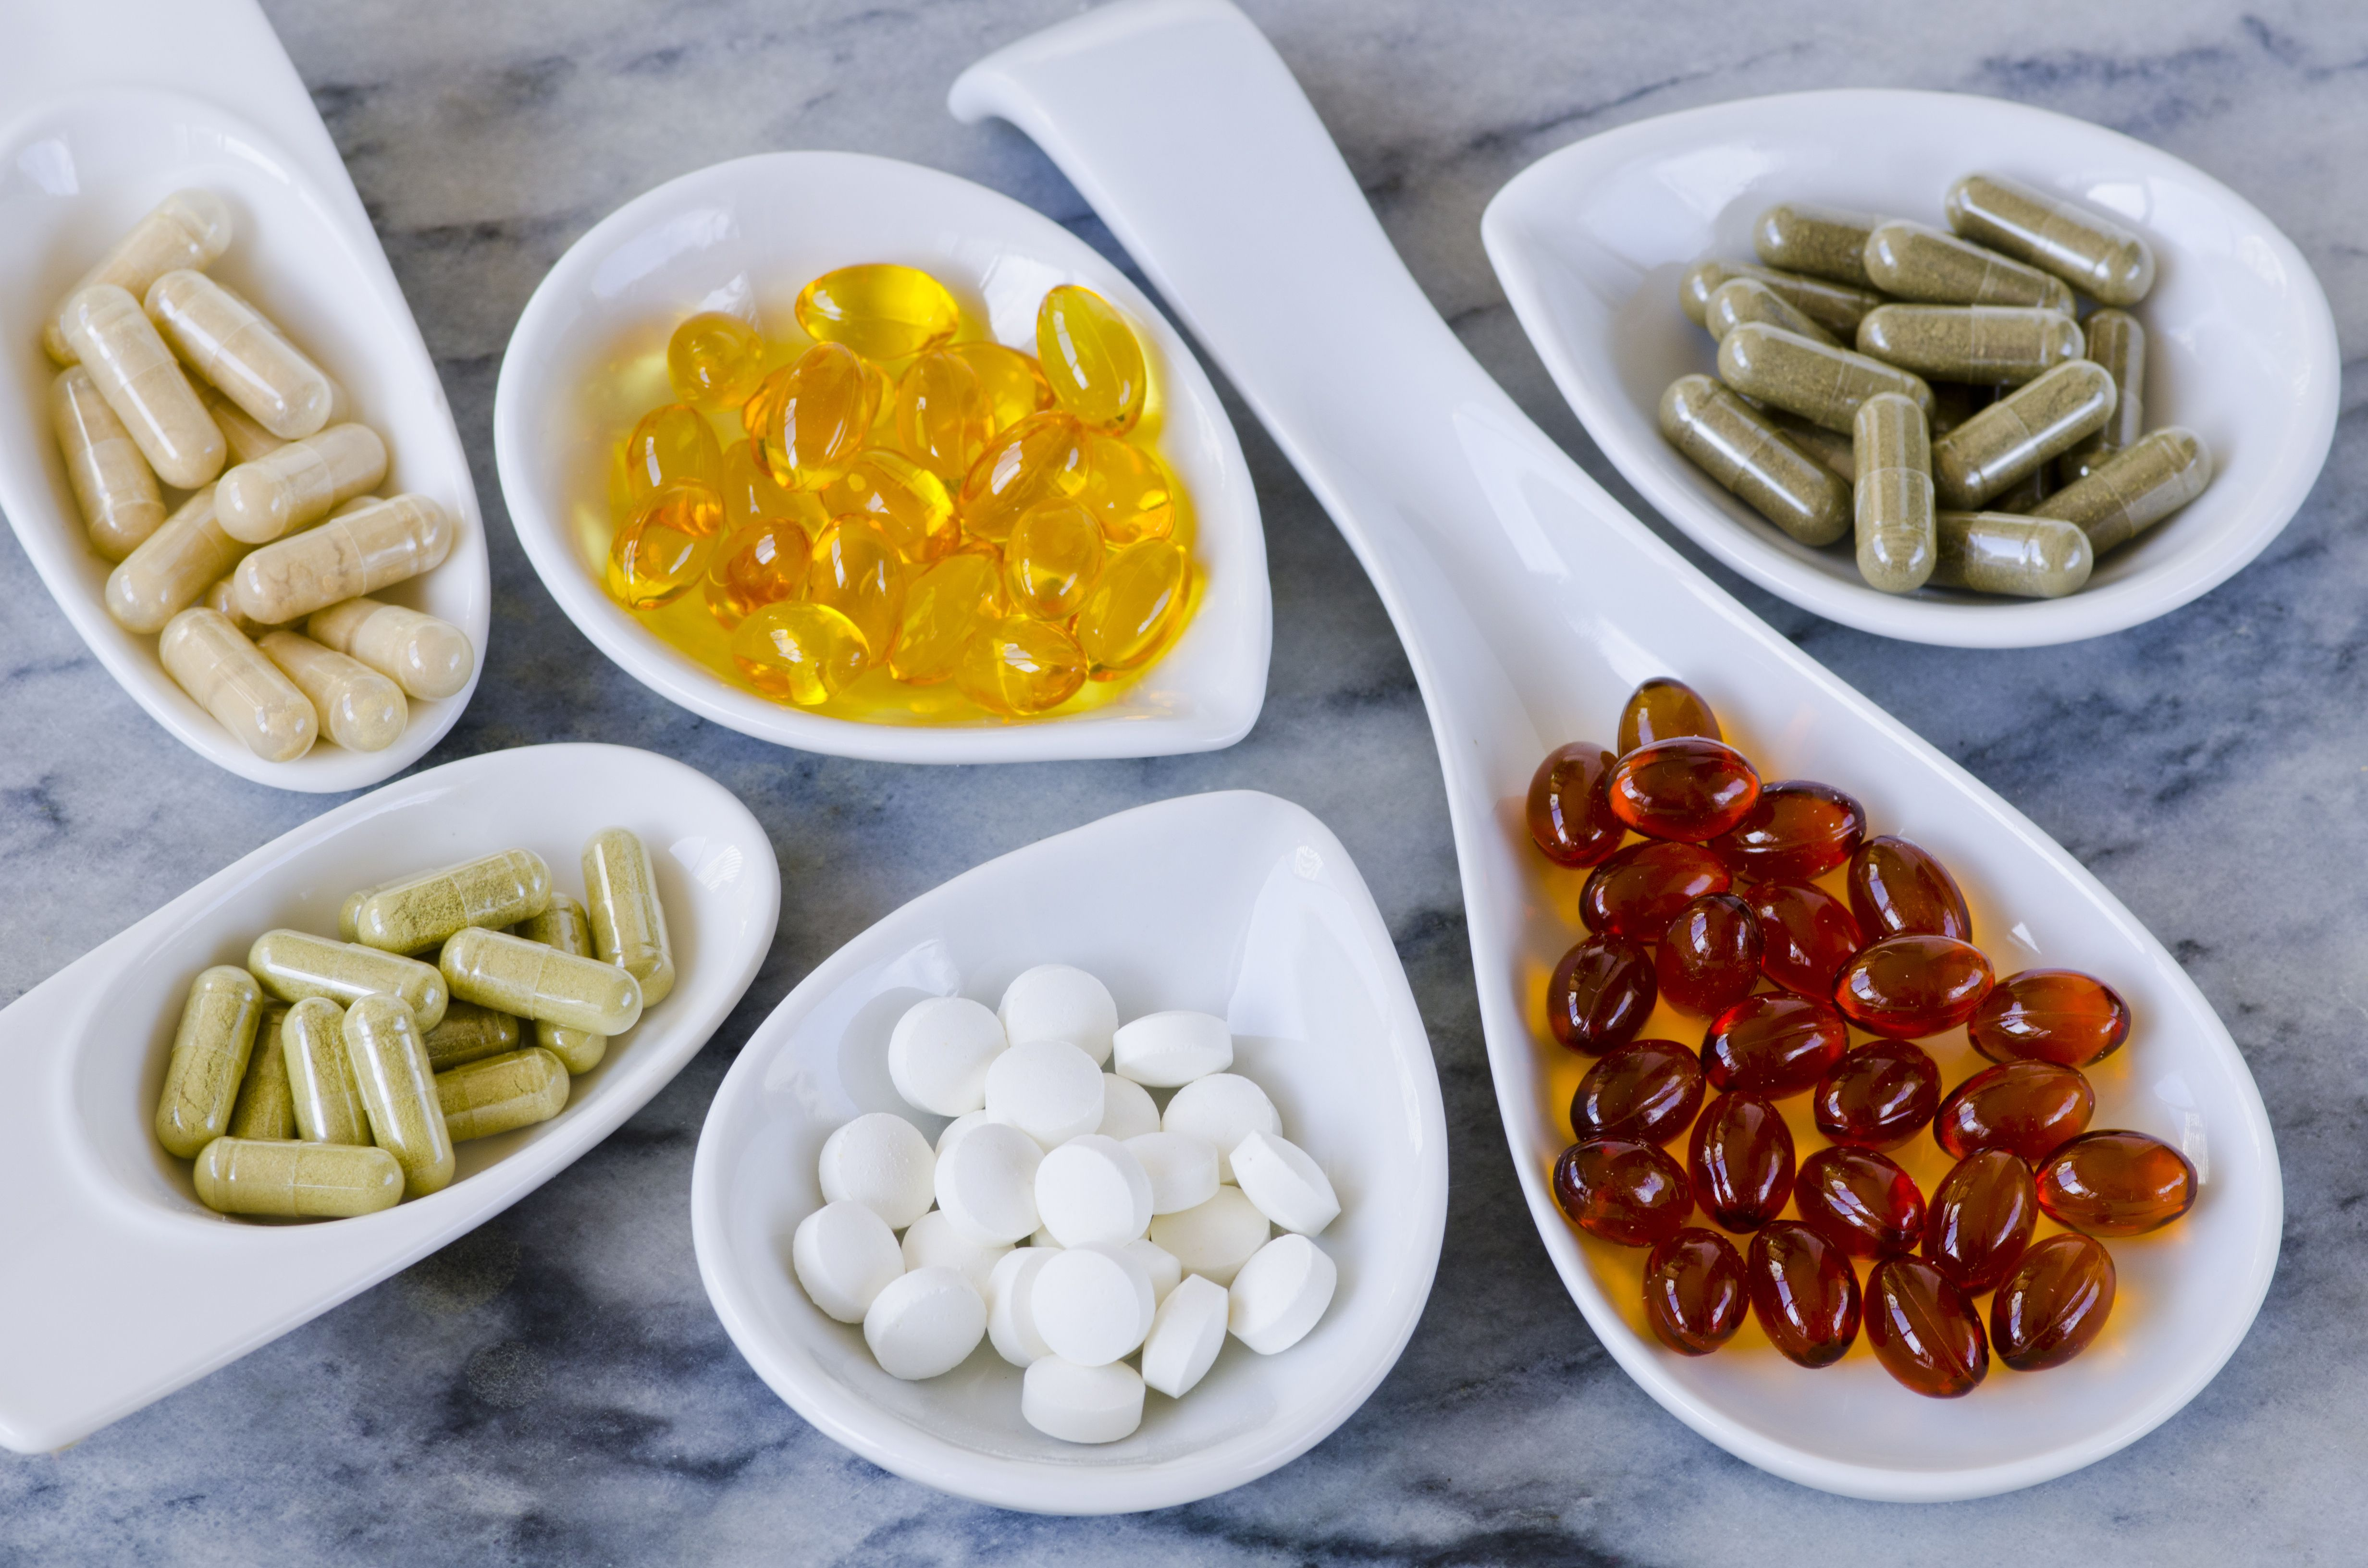 Are Nutritional Supplements Beneficial?